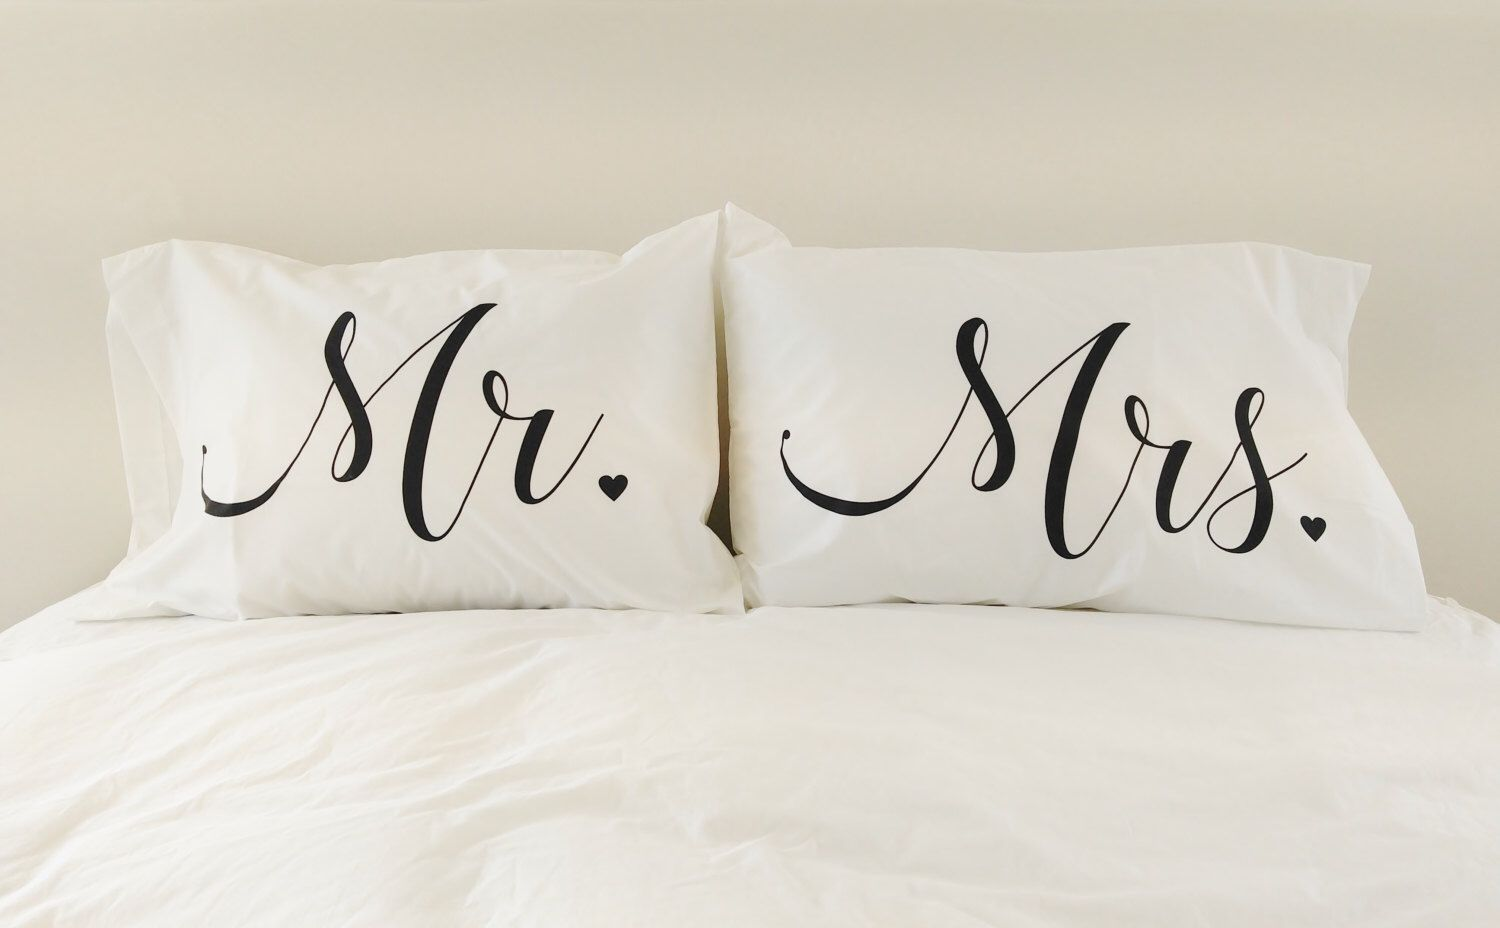 Uncategorized Unique Pillowcases mr mrs pillowcases couples pillow cases pillows unique wedding gift for